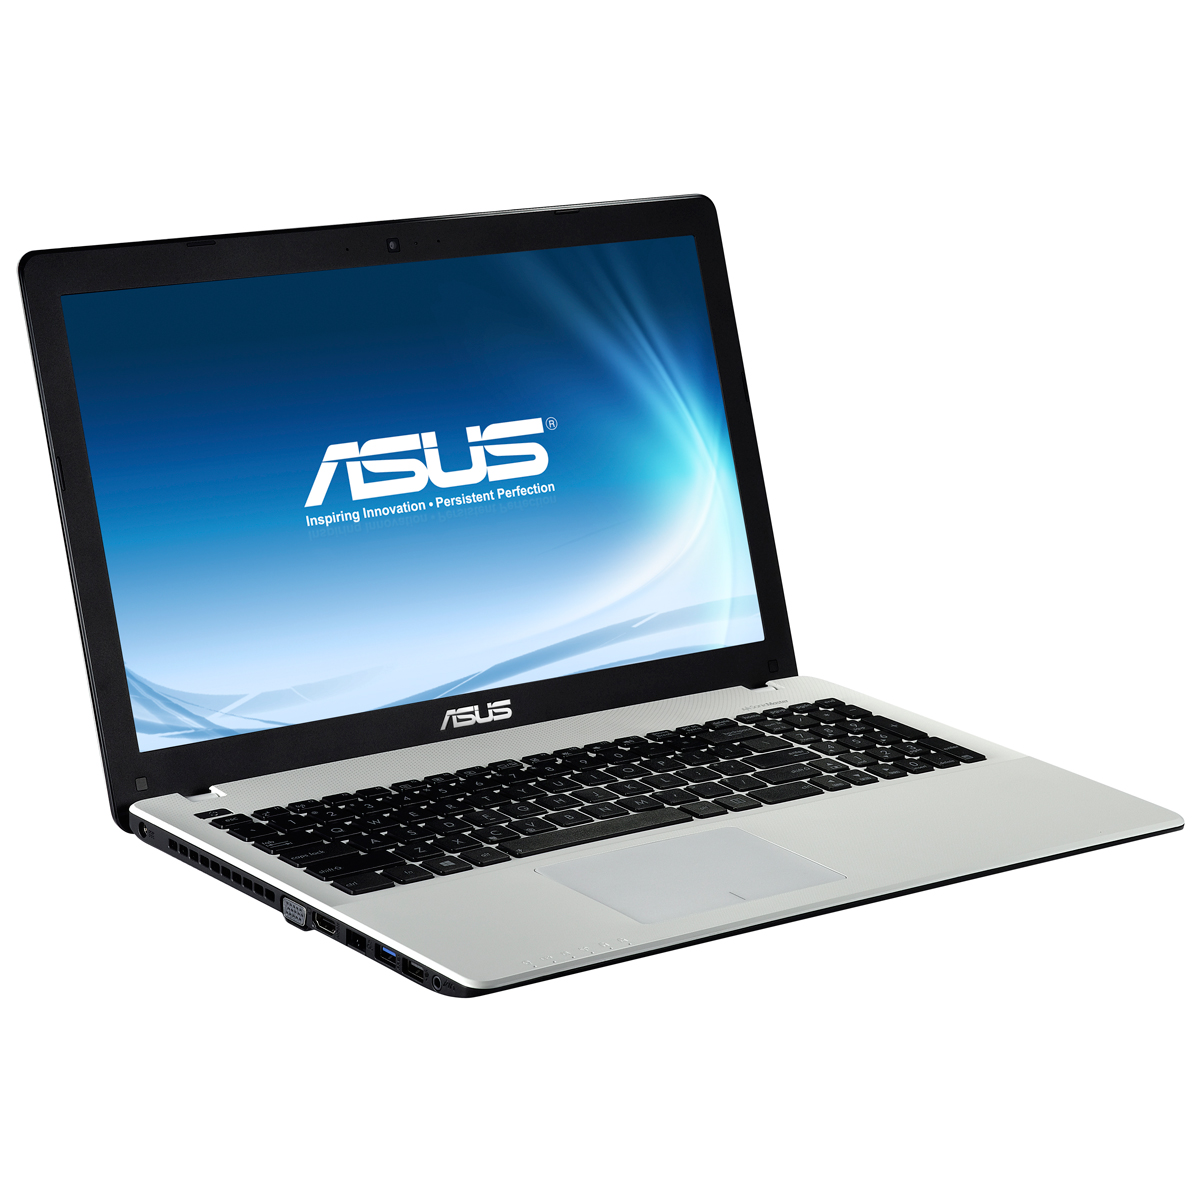 asus r510cc xx577h blanc 90nb00w3 m09490 achat vente pc portable sur. Black Bedroom Furniture Sets. Home Design Ideas